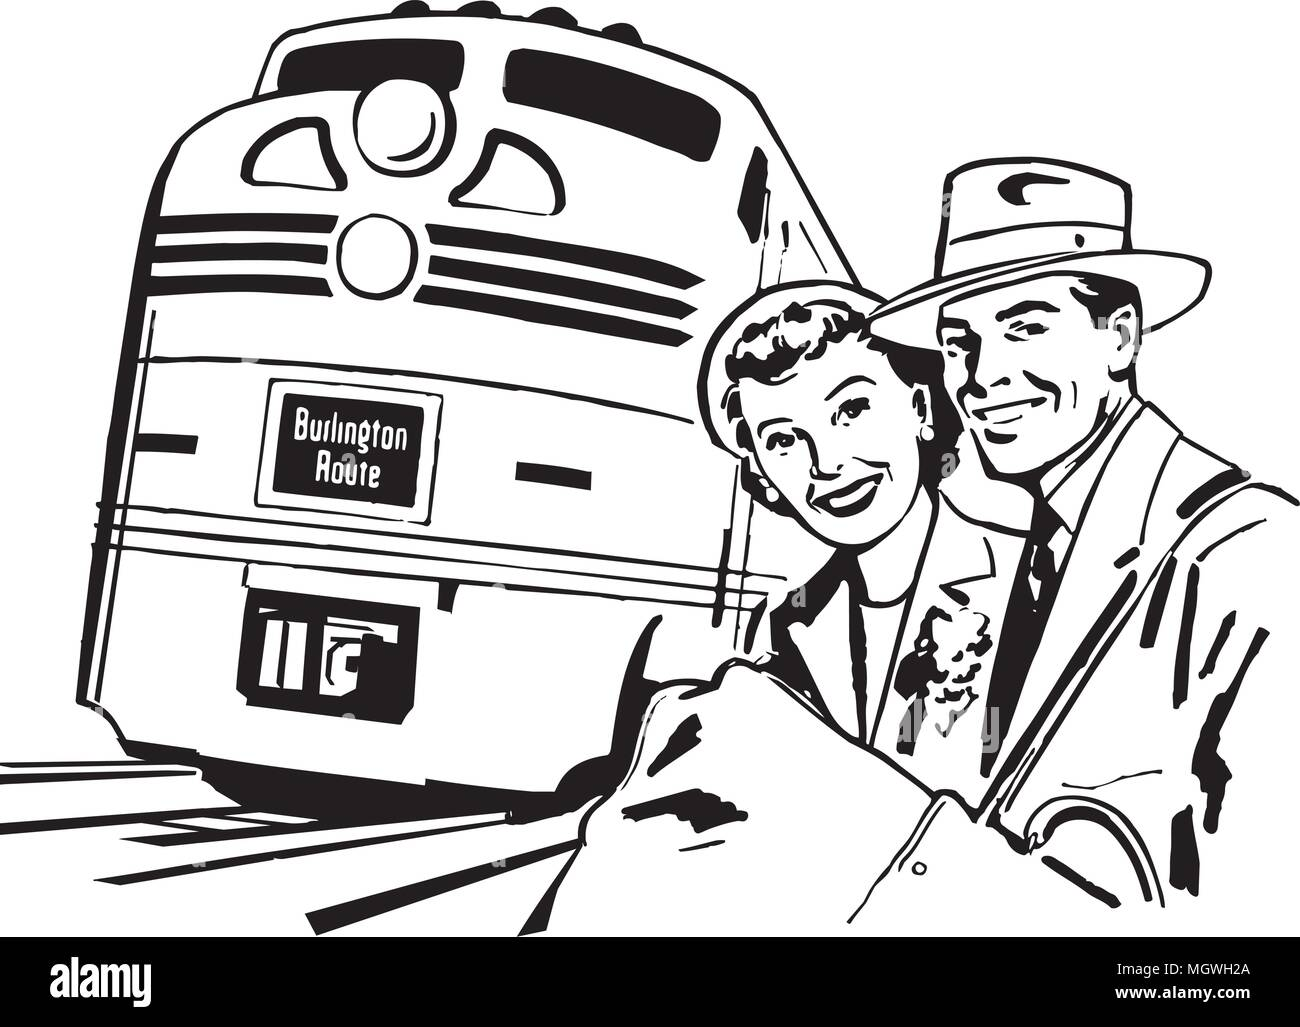 Family Vacation On Train - Download Free Vectors, Clipart Graphics & Vector  Art